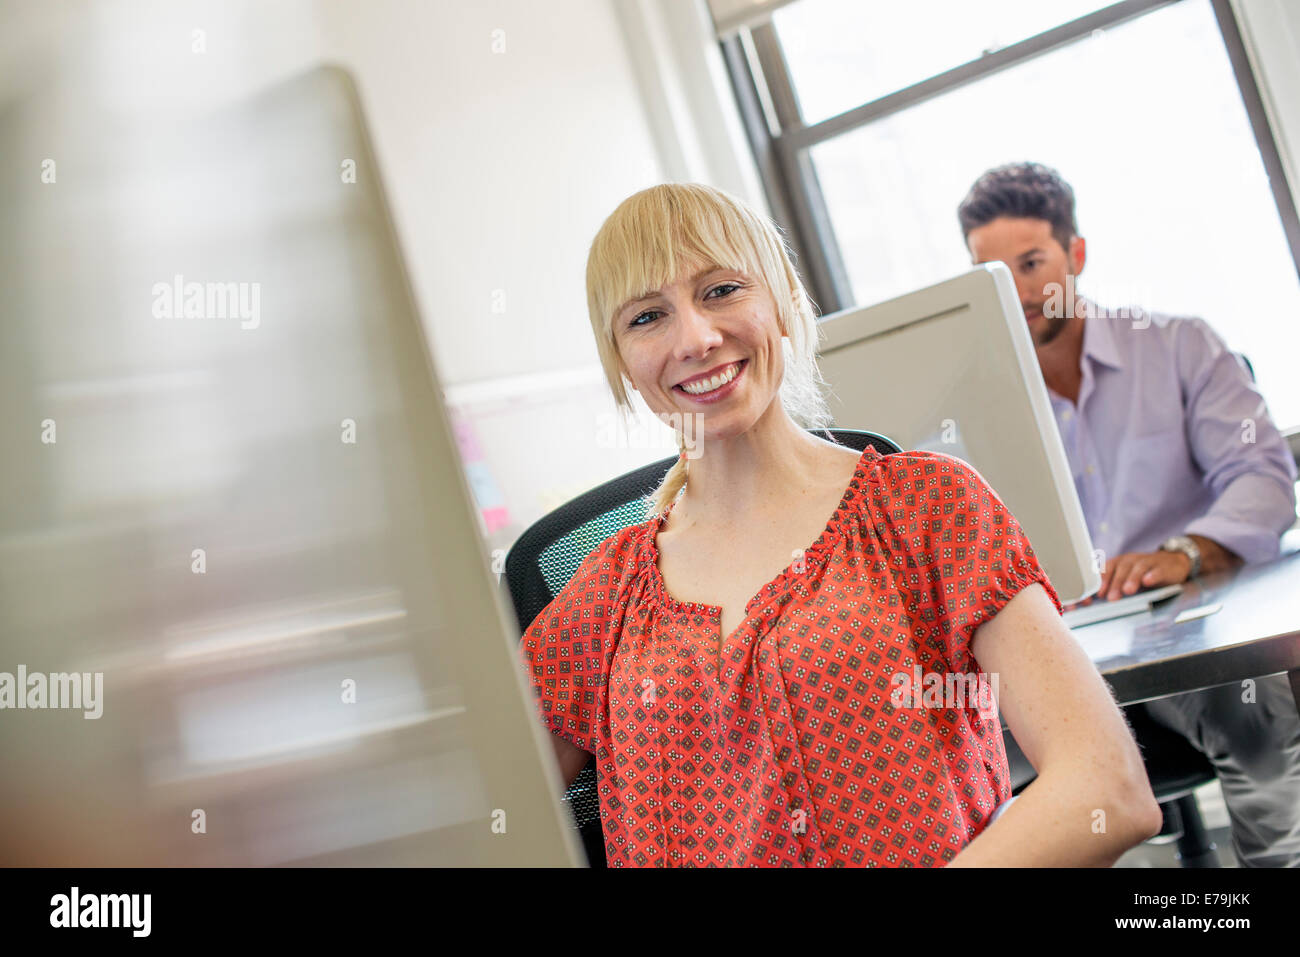 Office life. Two people seated at desks using computers. - Stock Image